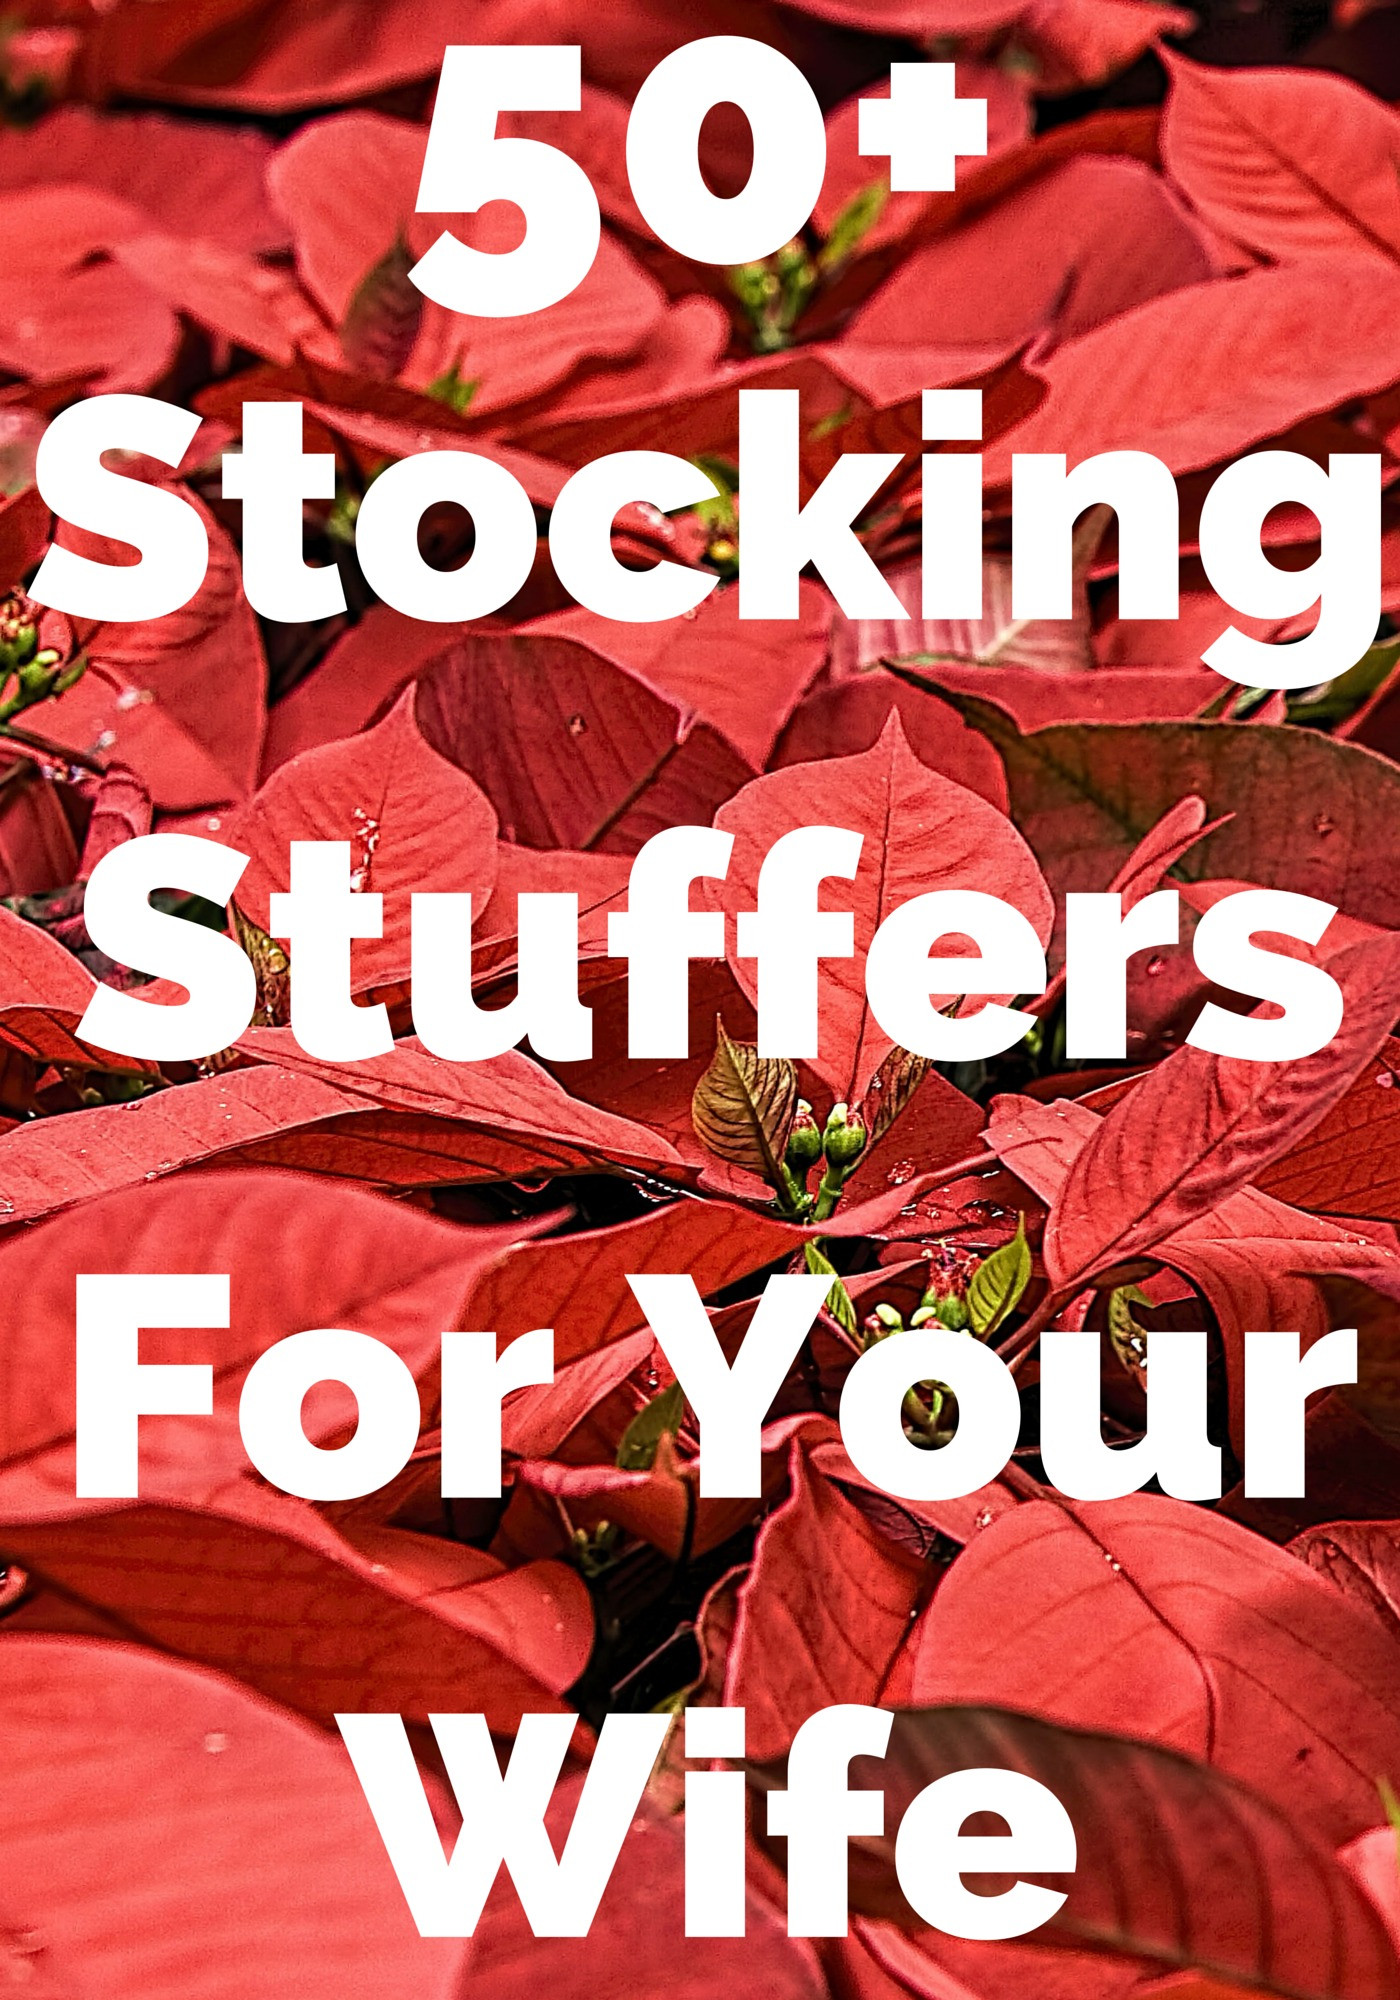 Christmas Gift Ideas For Your Wife  Best 50 Stocking Stuffers for Your Wife